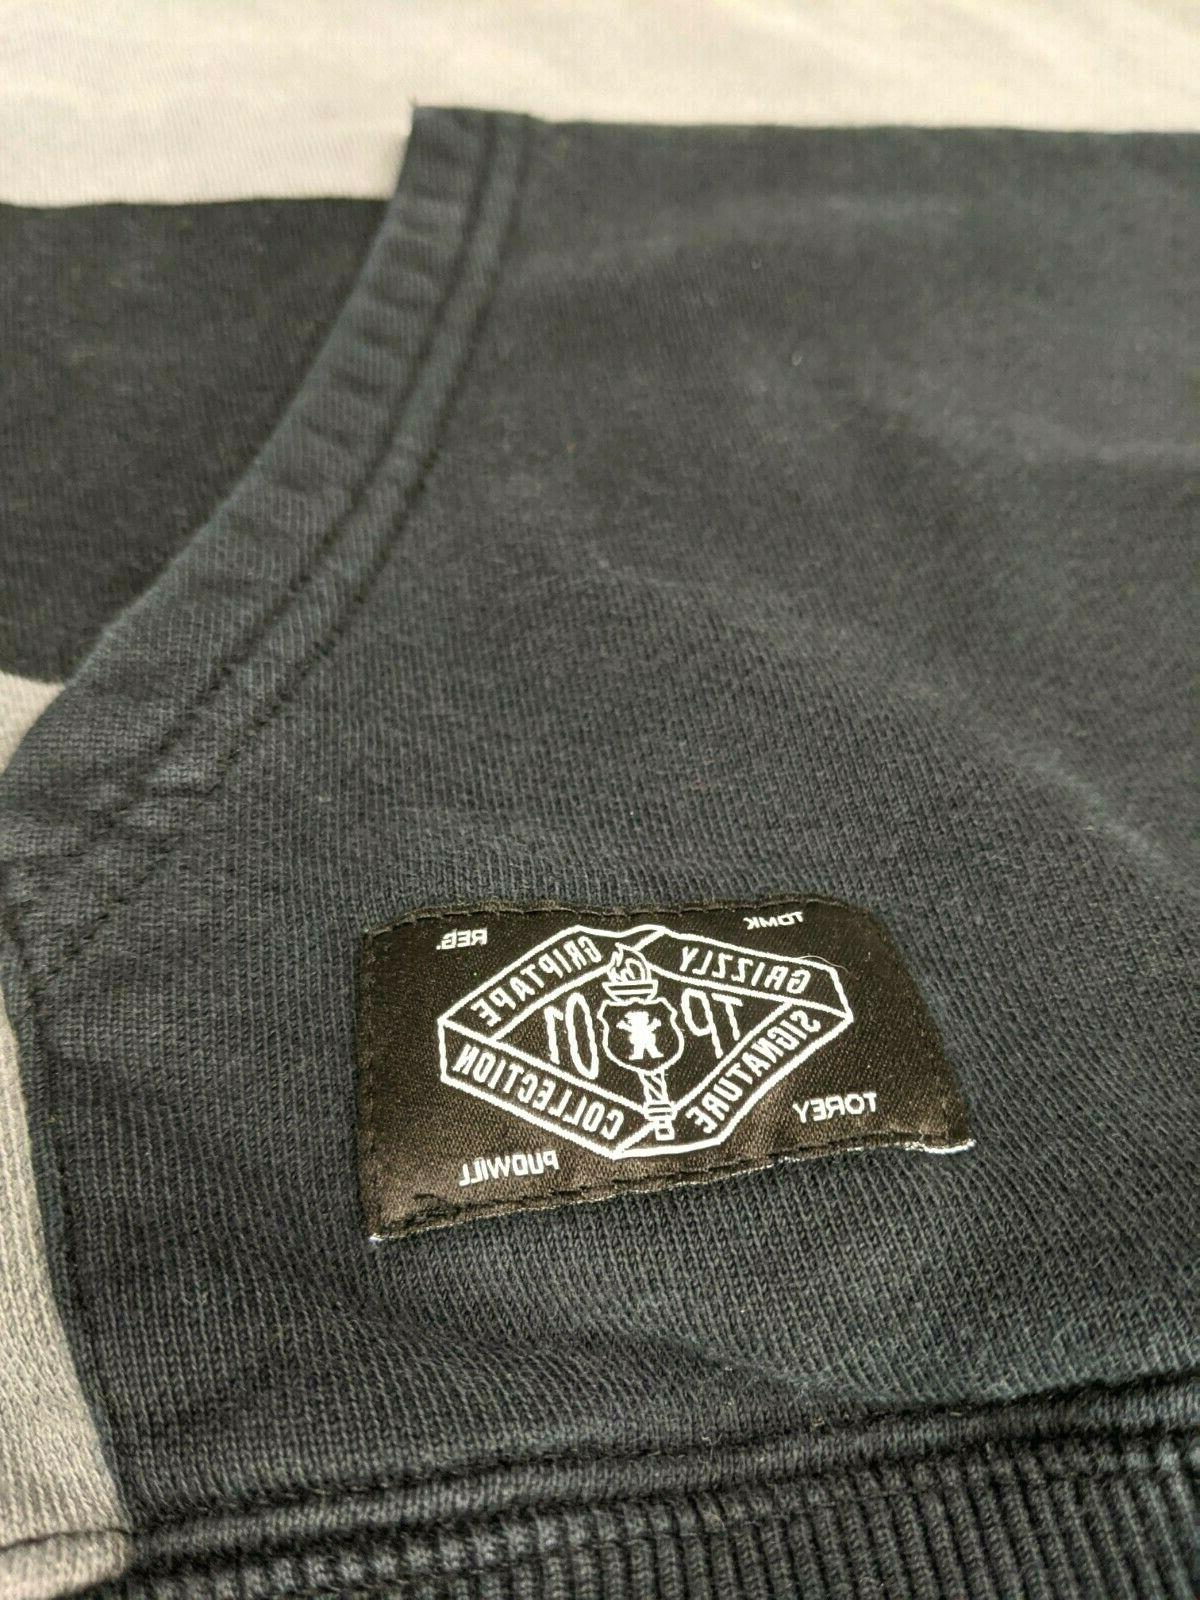 Grizzly Striped Gray Supply Co Apparel Size S